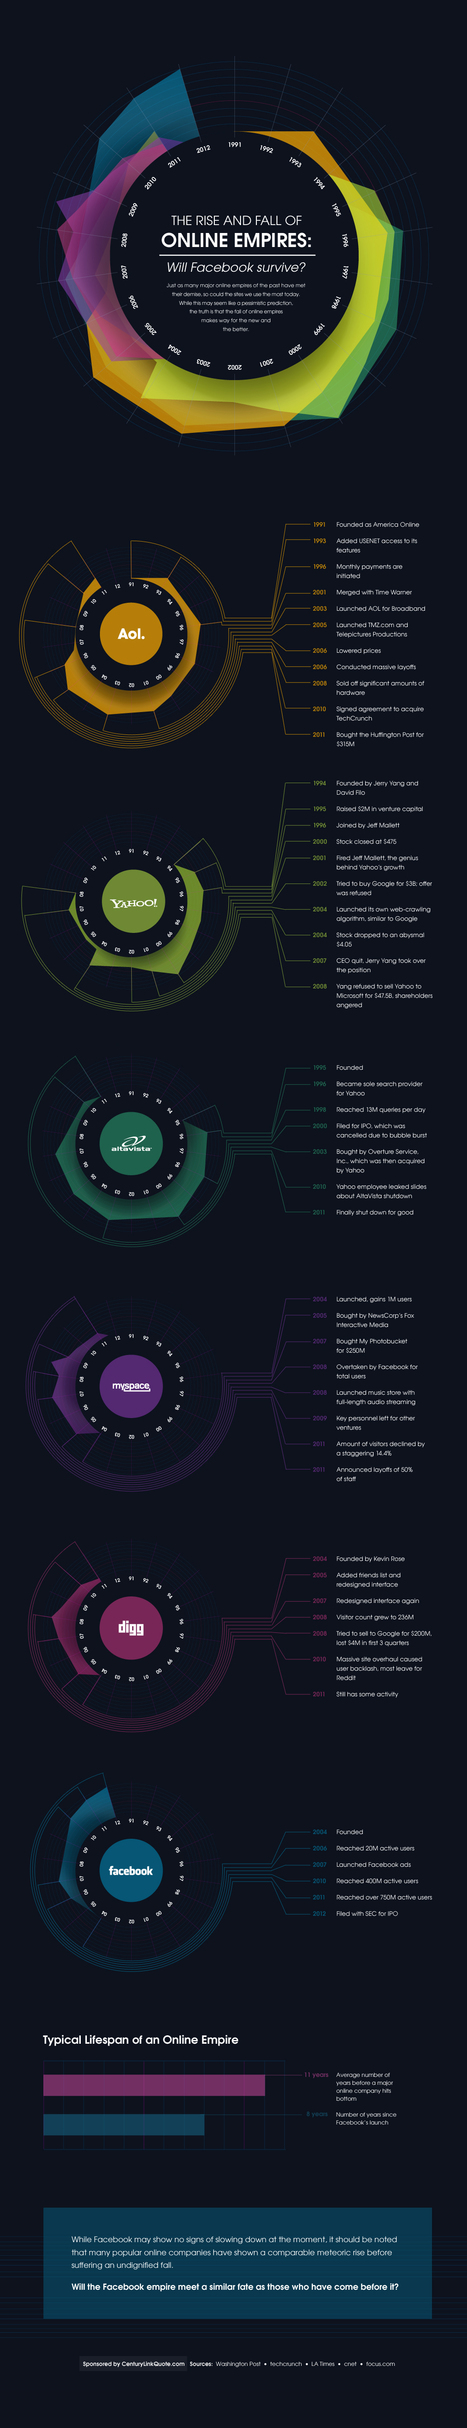 The Rise and Fall of Online Empires | Infographic | Passe-partout | Scoop.it